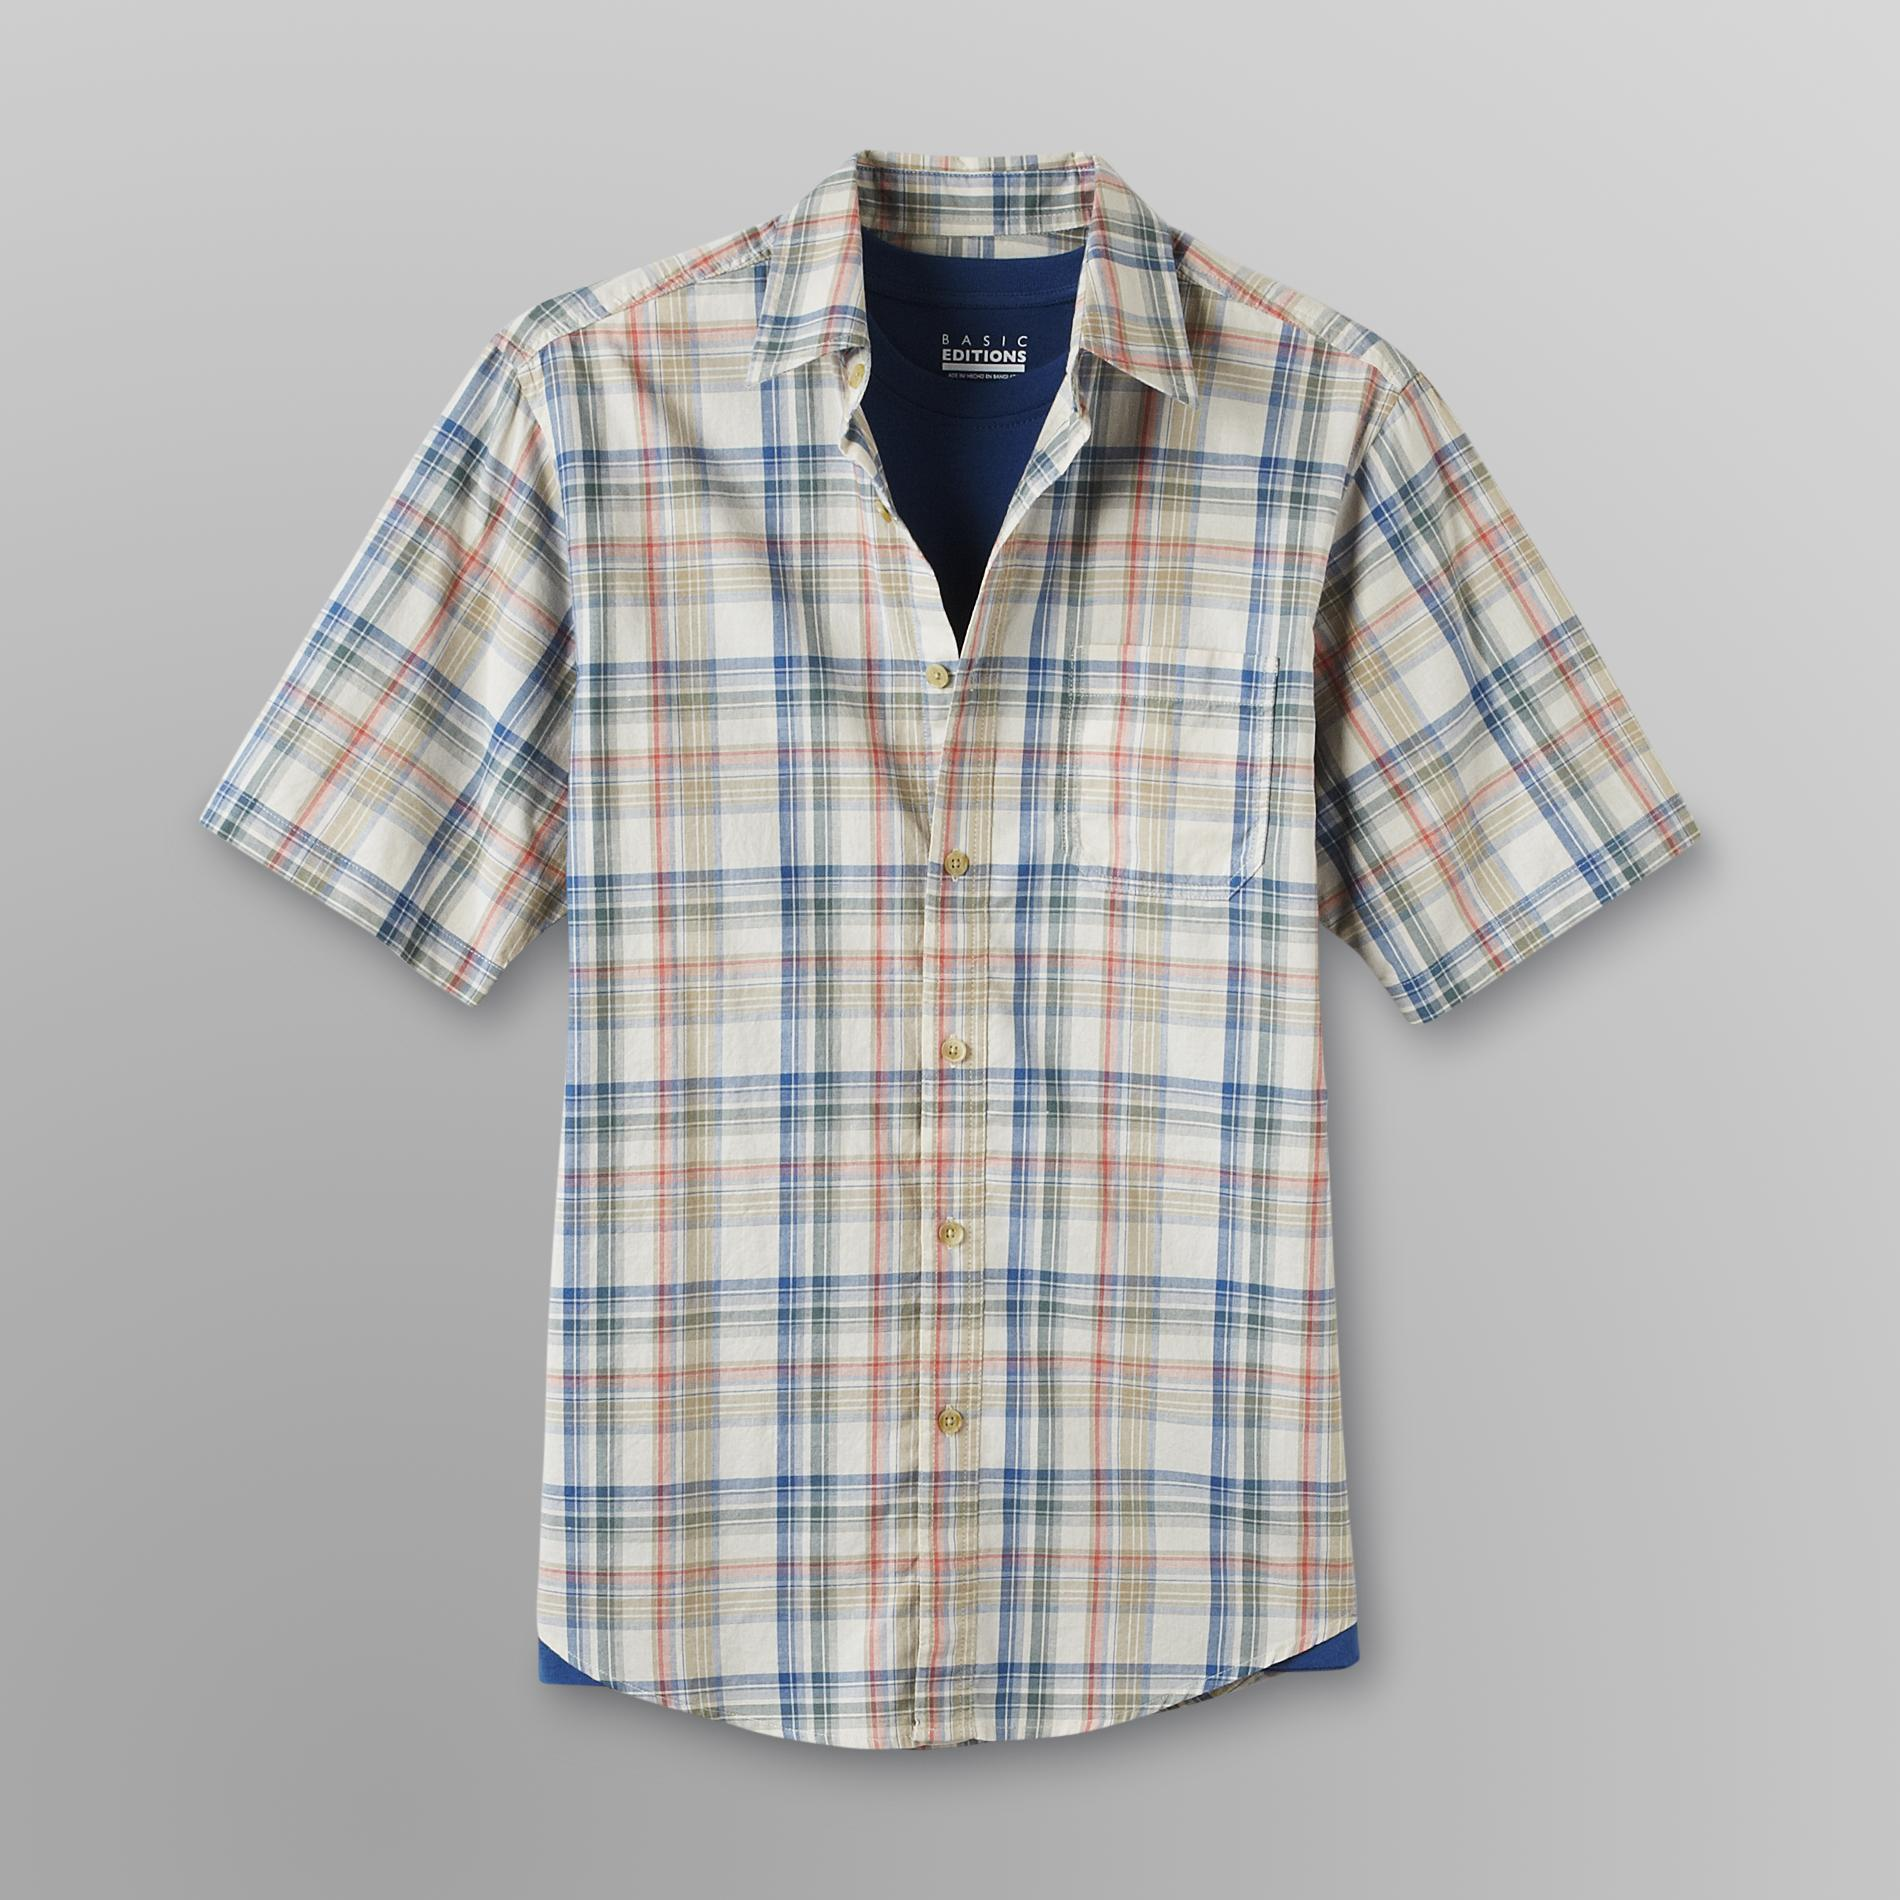 Basic Editions Men's Collared Shirt & T-Shirt - Plaid at Kmart.com